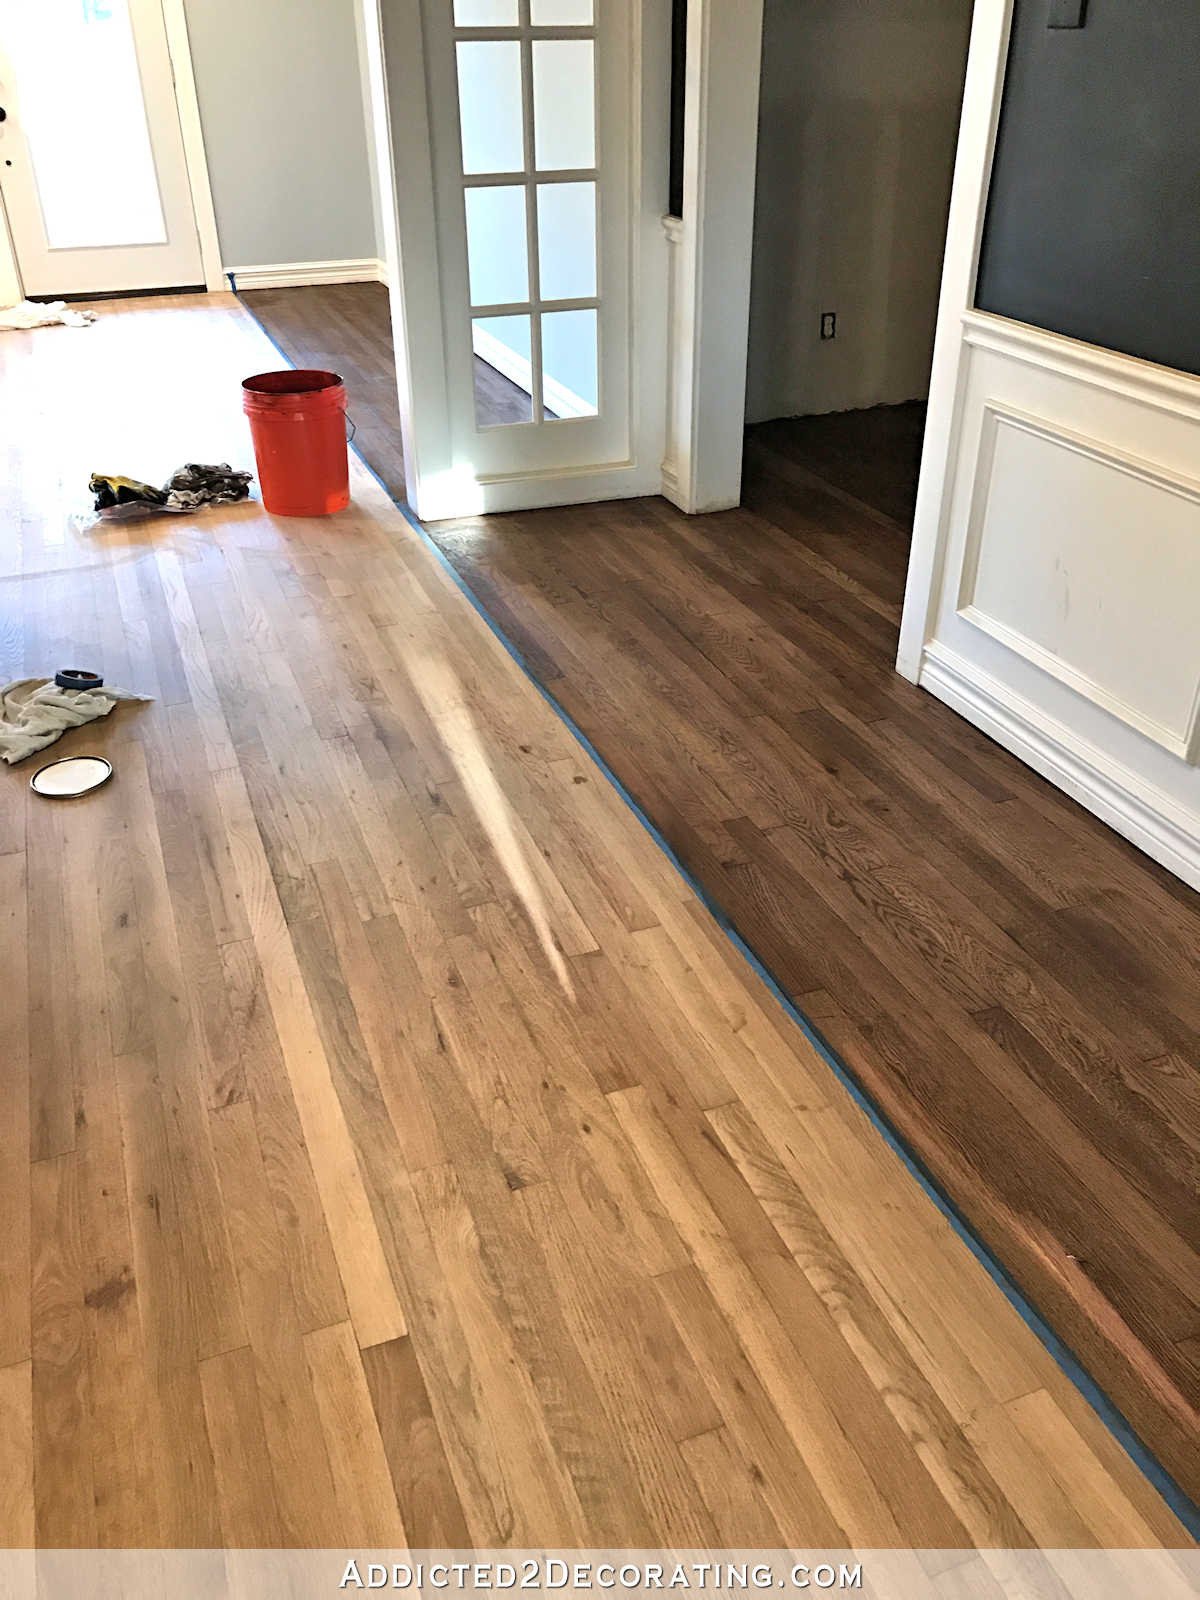 restoring hardwood floors yourself of adventures in staining my red oak hardwood floors products process throughout staining red oak hardwood floors 6 stain on partial floor in entryway and music